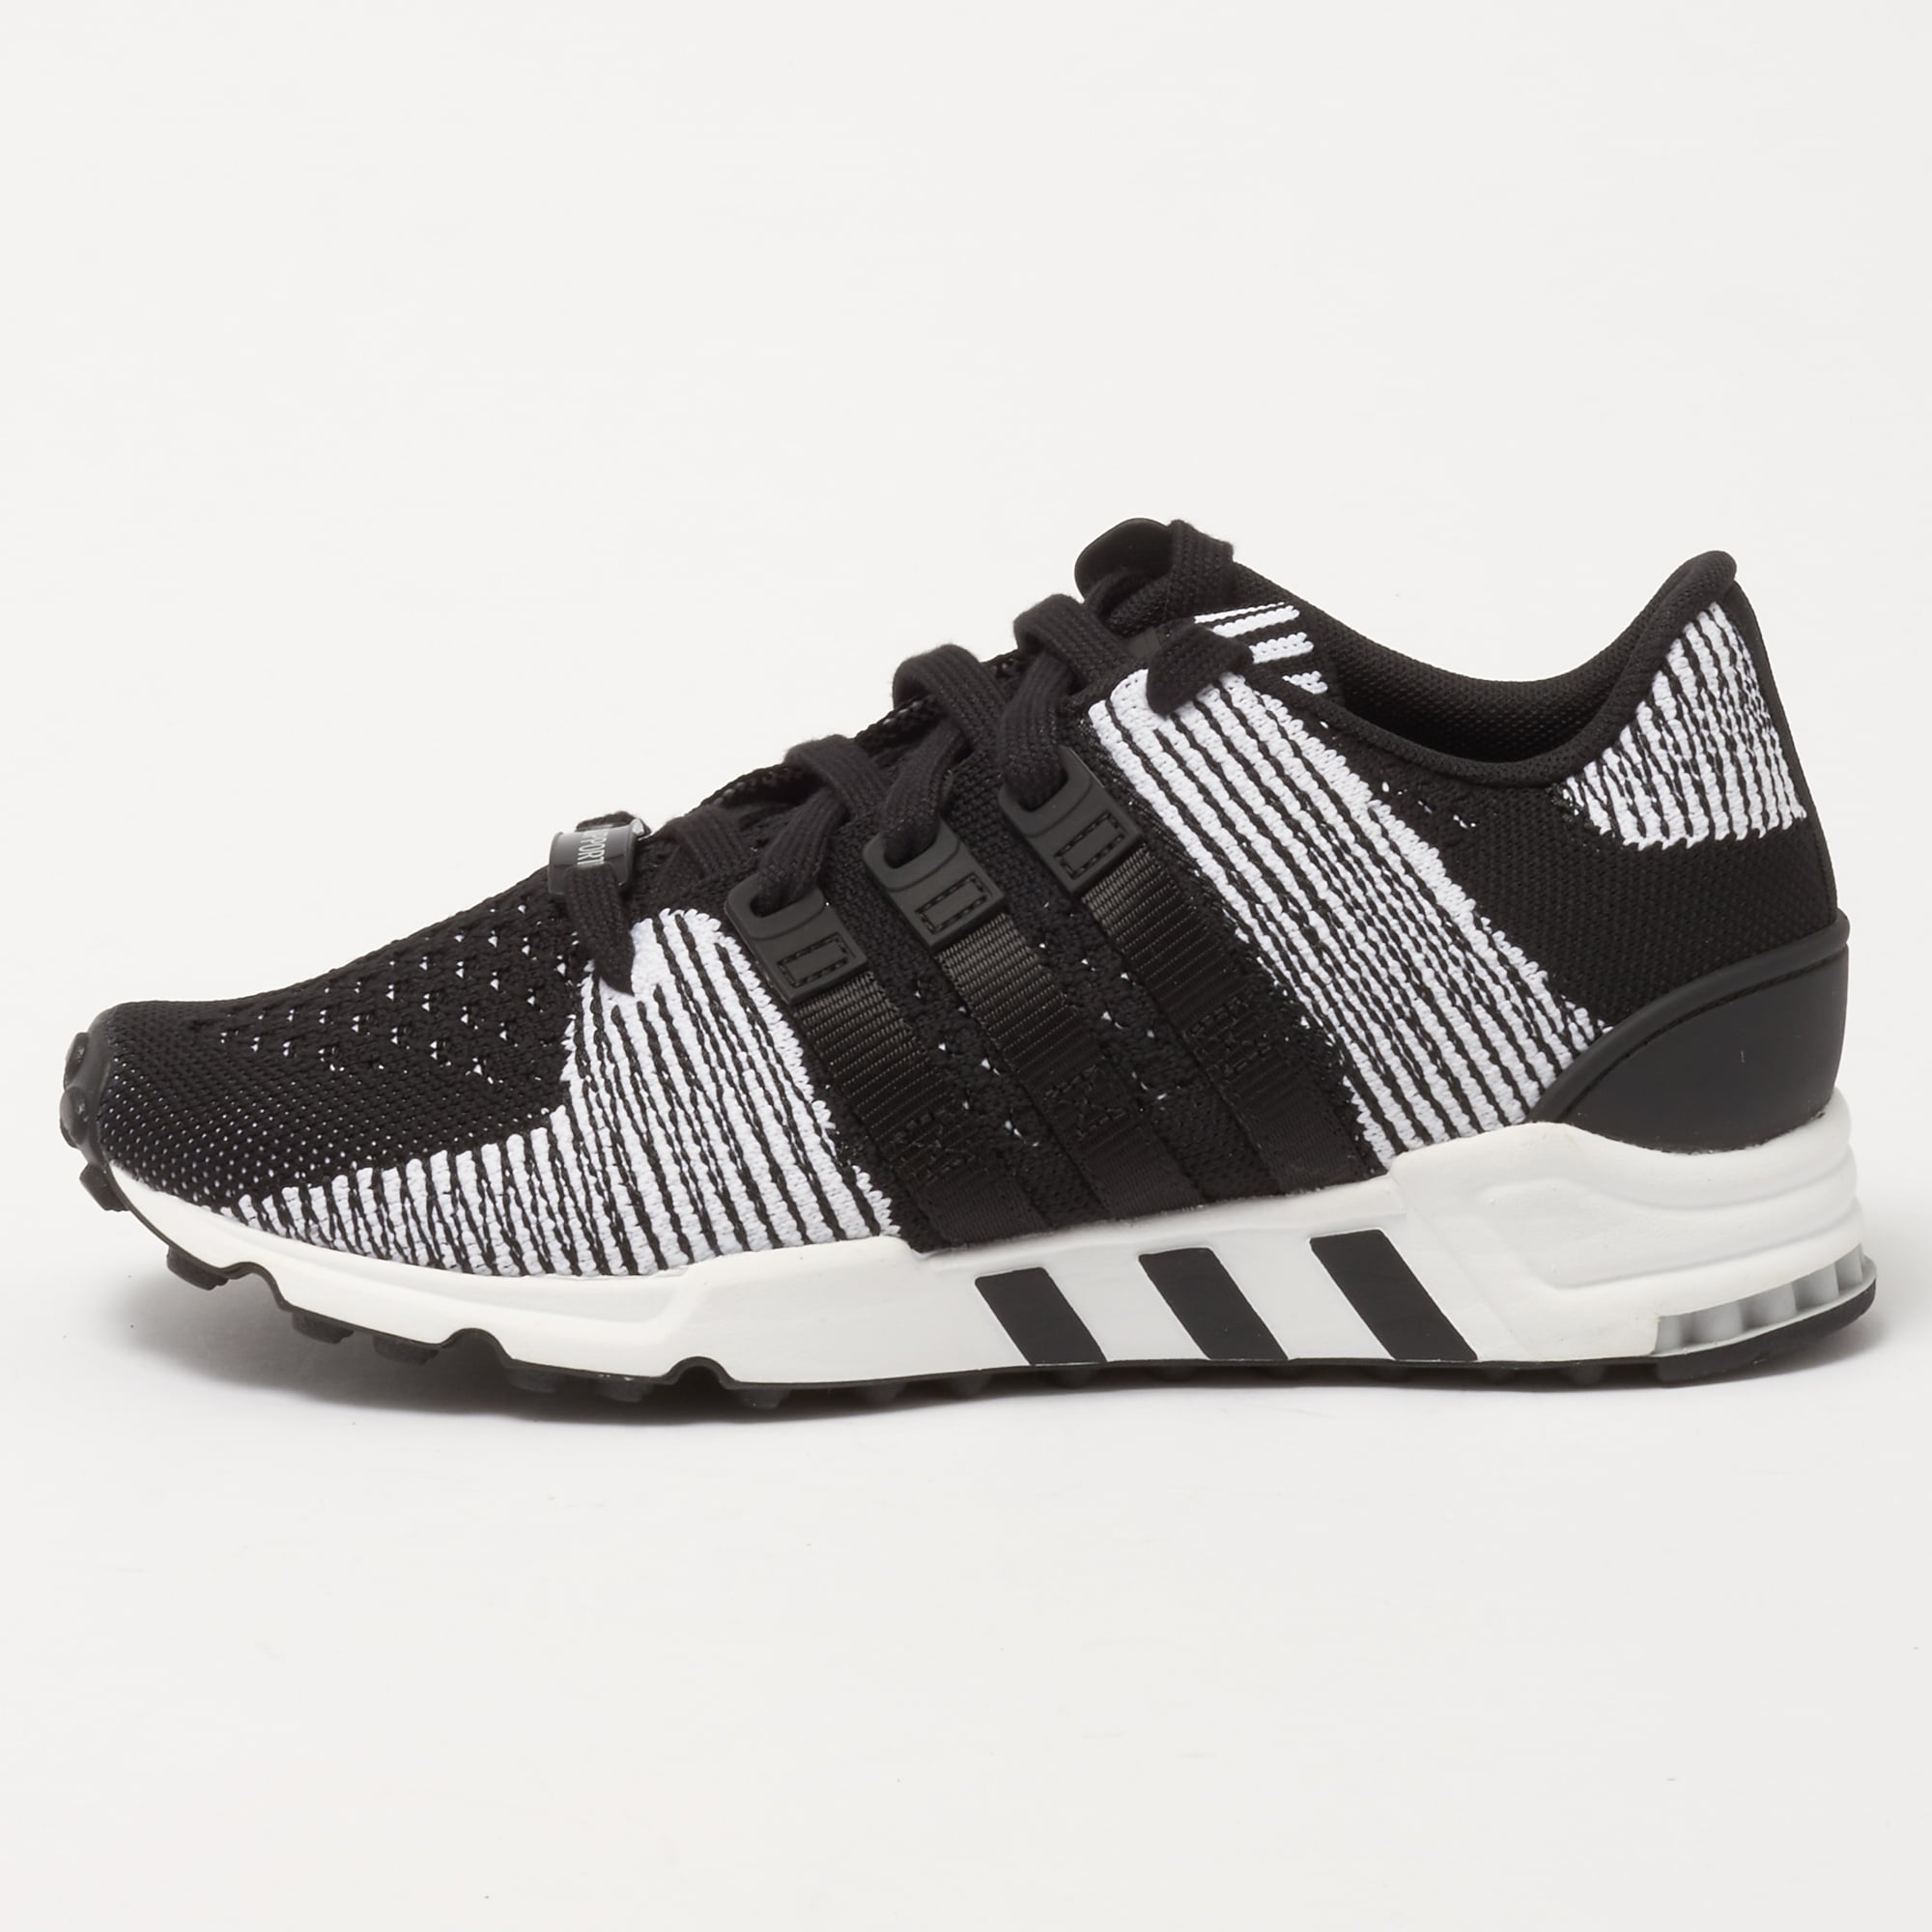 on sale 3d355 af908 adidas Originals EQT Support RF Primeknit - Core Black & FTW White